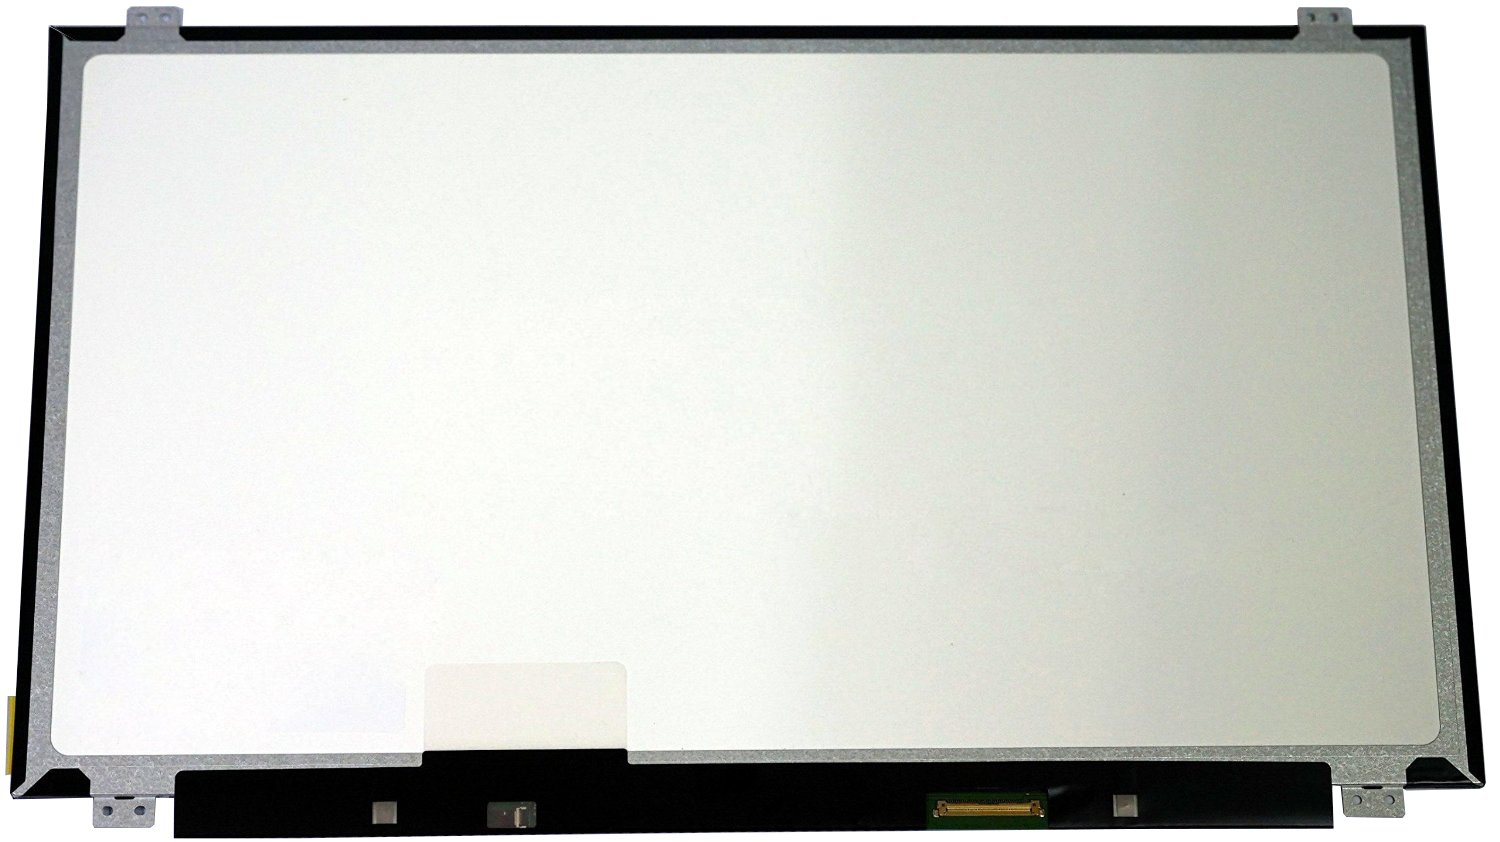 QuYing Laptop LCD Screen for Acer ASPIRE V3-574G V5-591G V5-531P V7-581P V5-572 V5-572G E5-522G SERIES (15.6 1366x768 30pin) a065vl01 v3 lcd screen